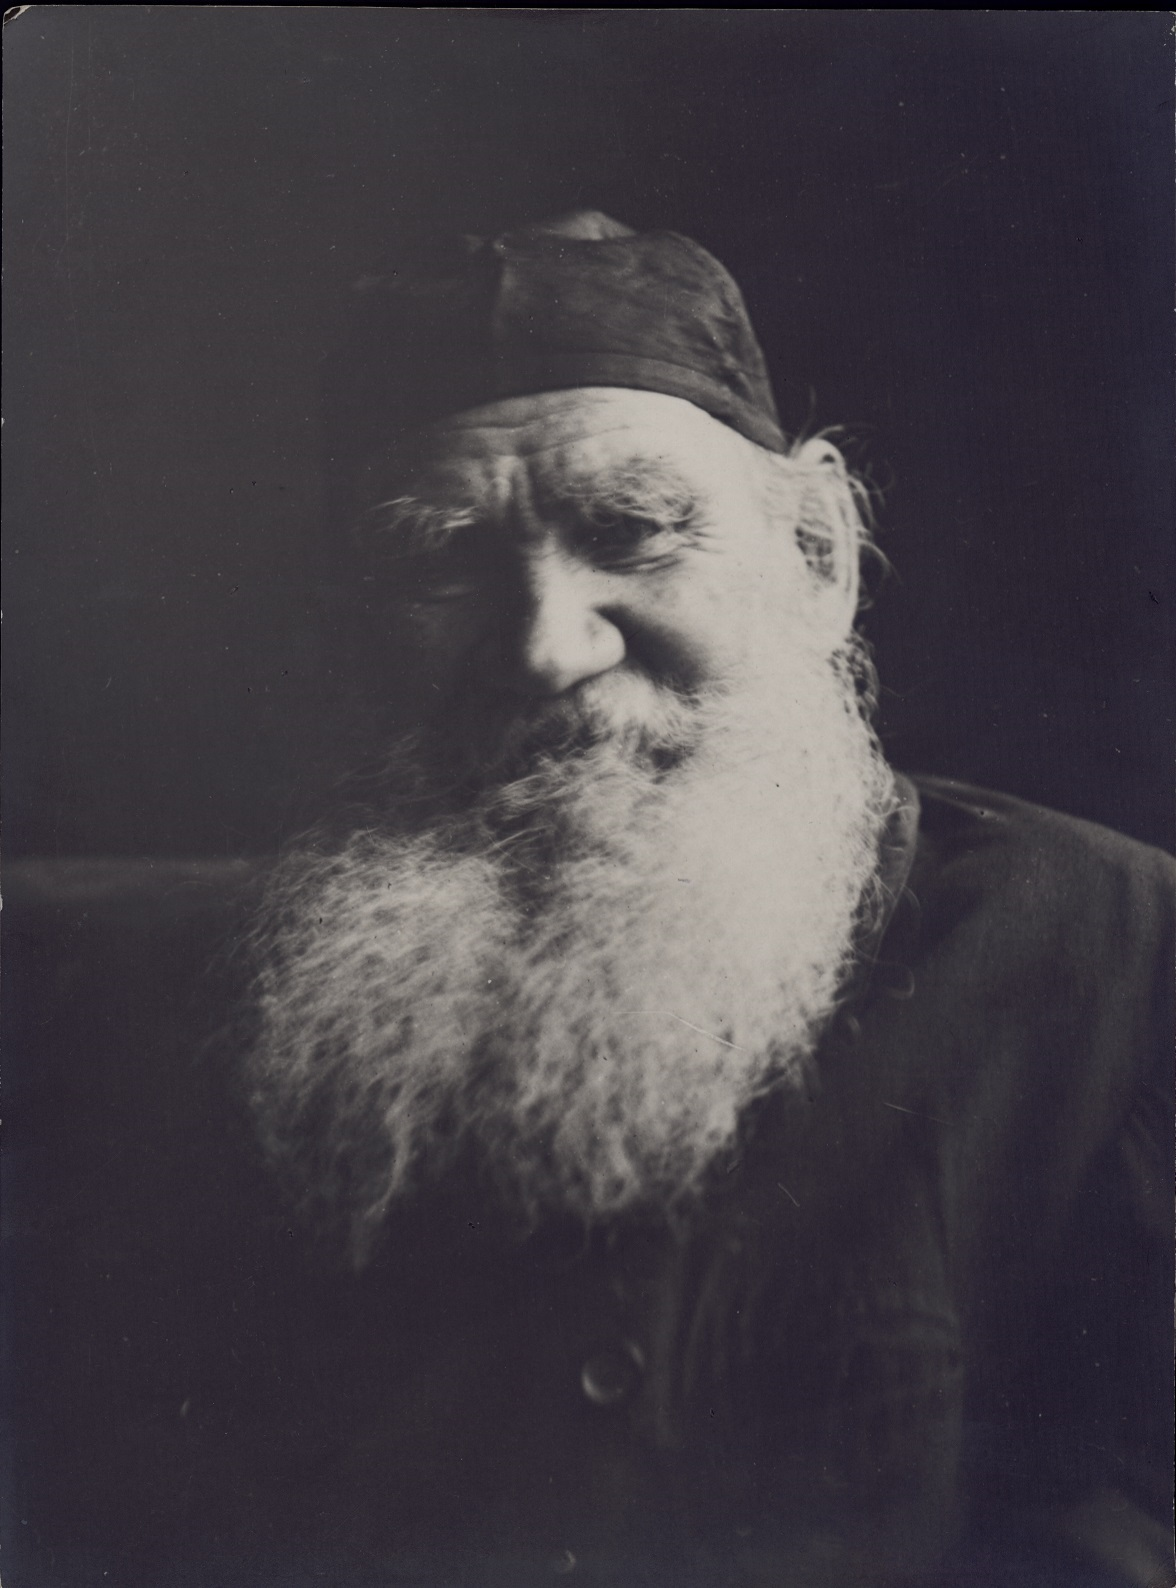 Among all the literary pieces written by Leo Tolstoy, 174 have been preserved, including unfinished essays and drafts. One might think that to accomplish such amount of work he had to write around the clock. However, Tolstoy's life was incredibly diverse. // Photo from the series by Vladimir Chertkov, Yasnaya Polyana